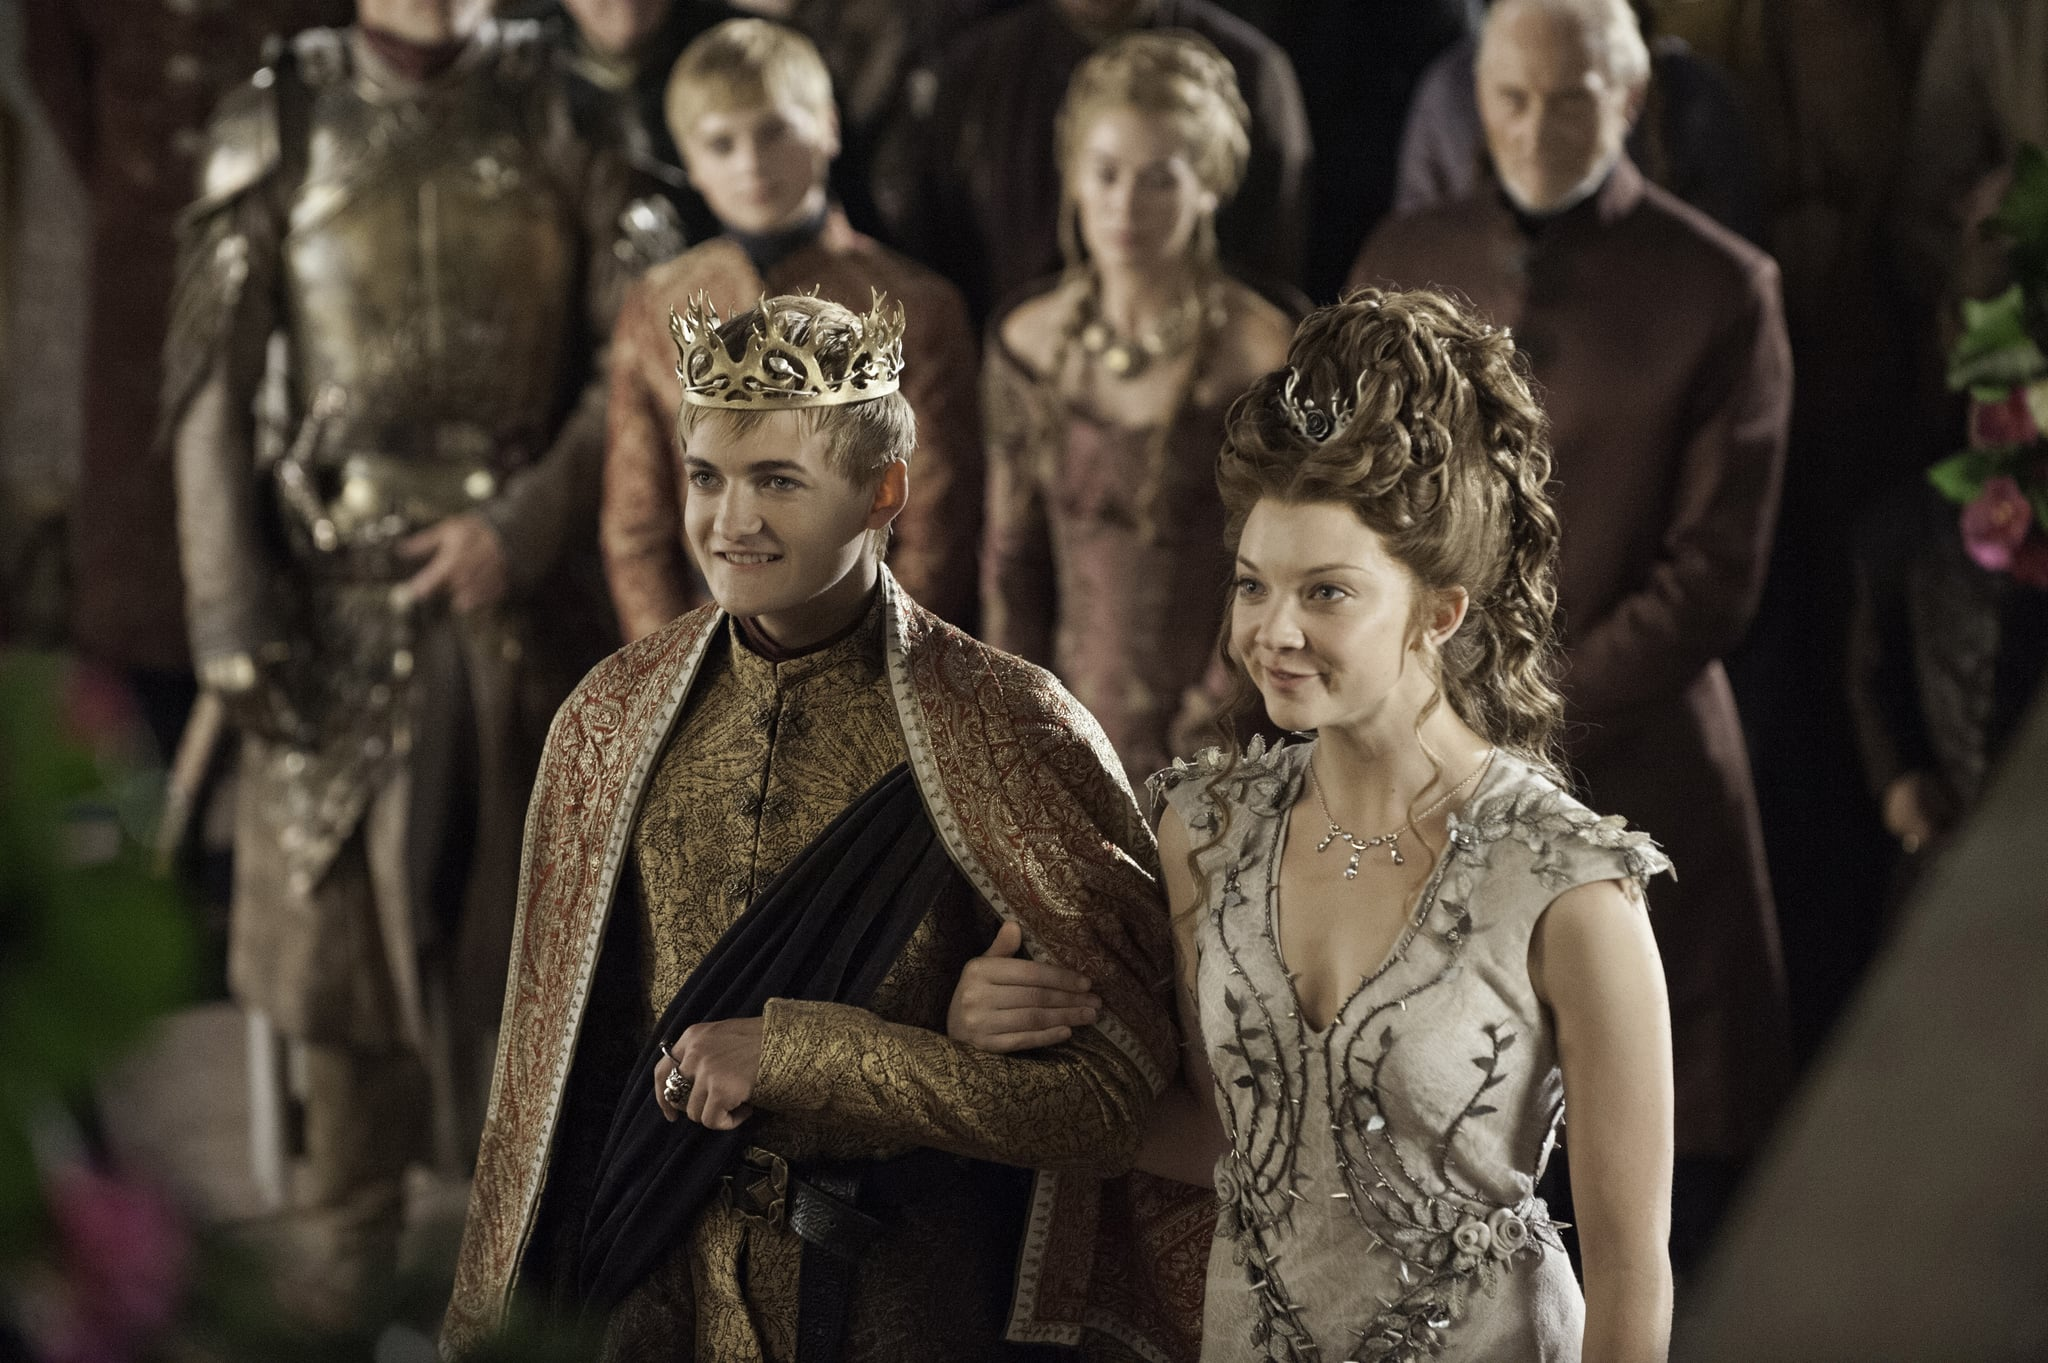 Bride Margaery and groom Joffrey stand at the altar.